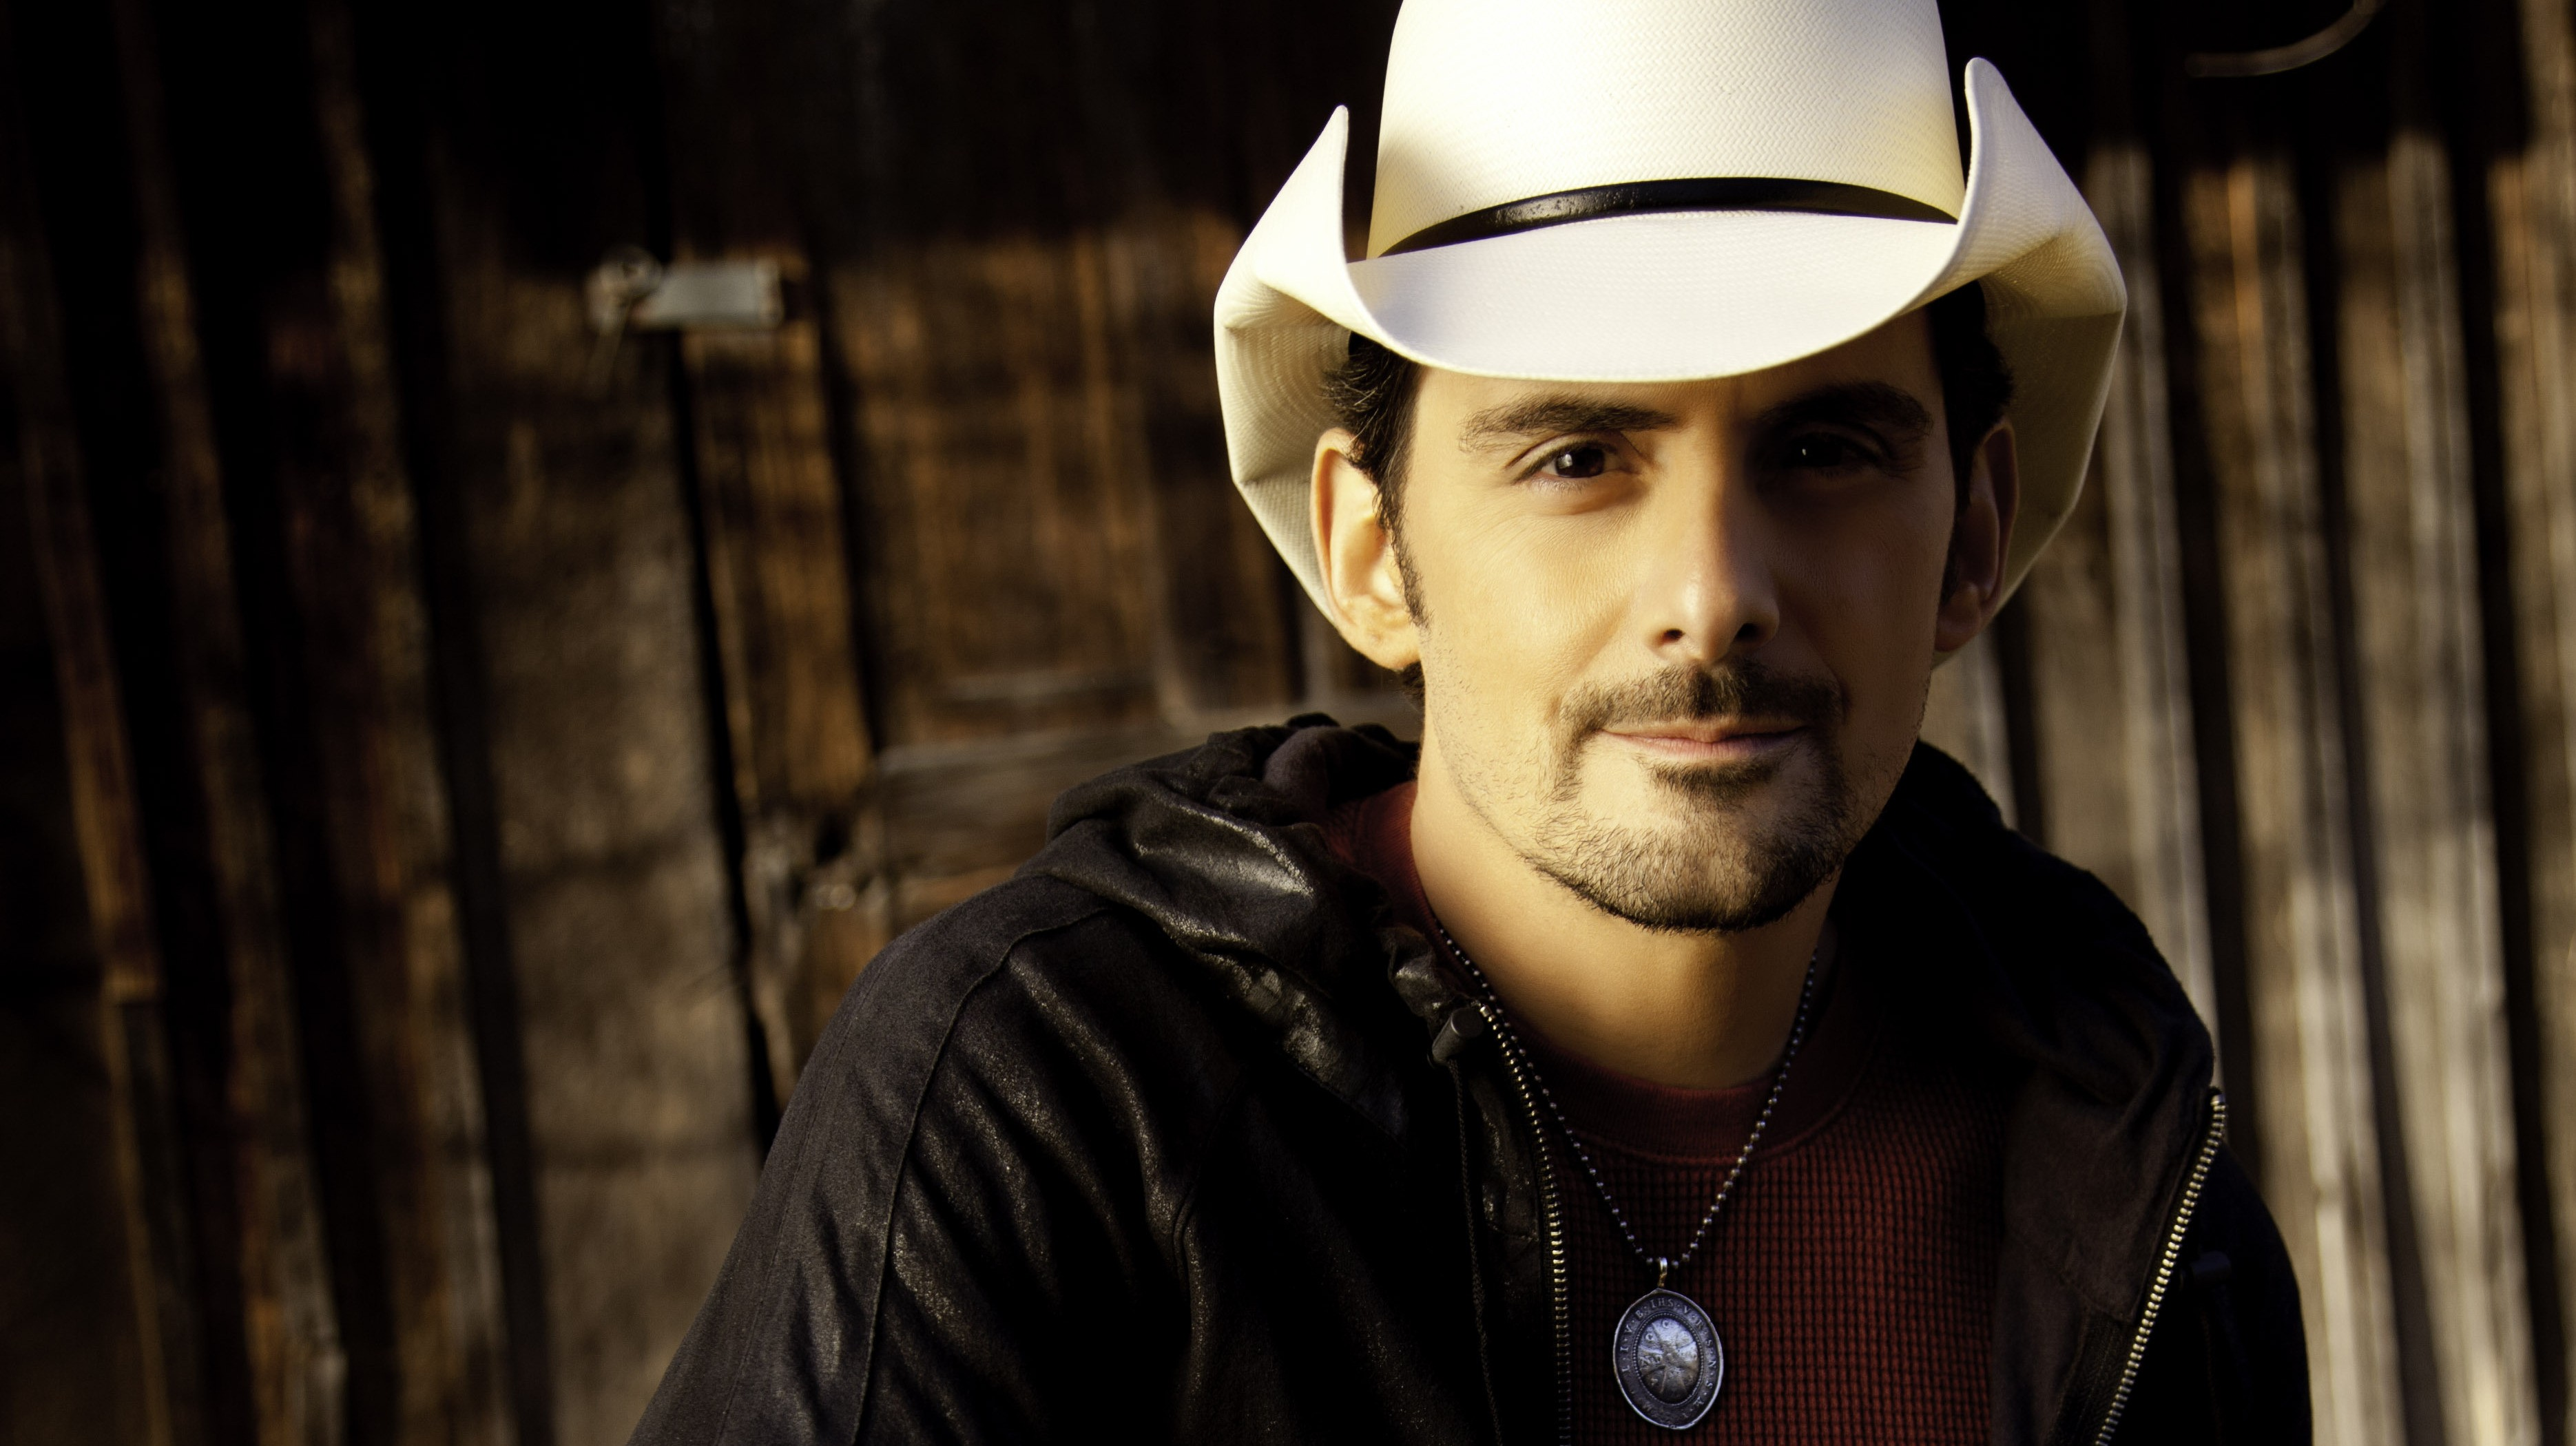 Country Music Stars Wallpaper: Wallpaper Brad Paisley, Top Music Artist And Bands, Singer